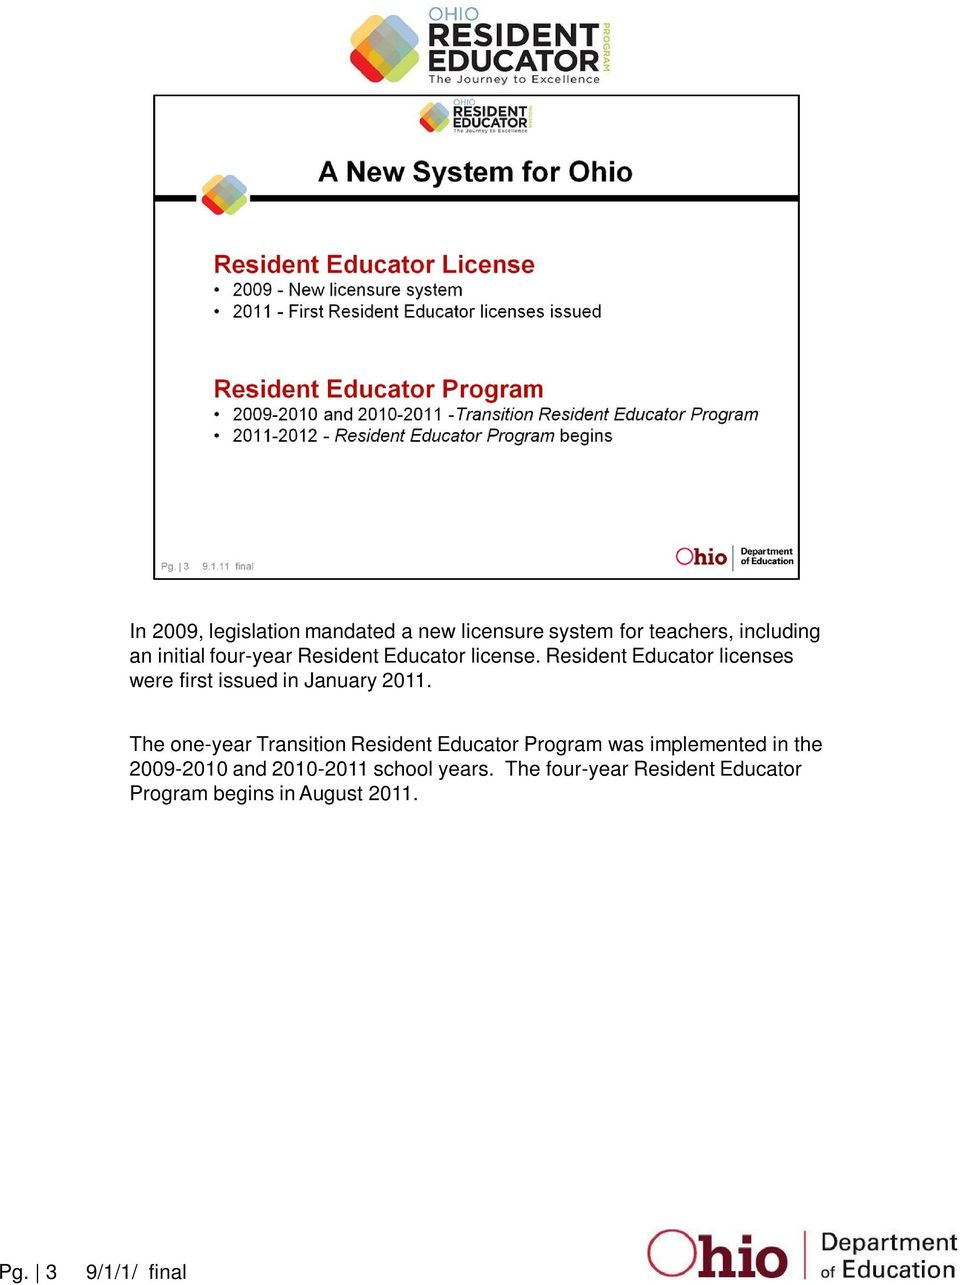 Resident Educator licenses were first issued in January 2011.